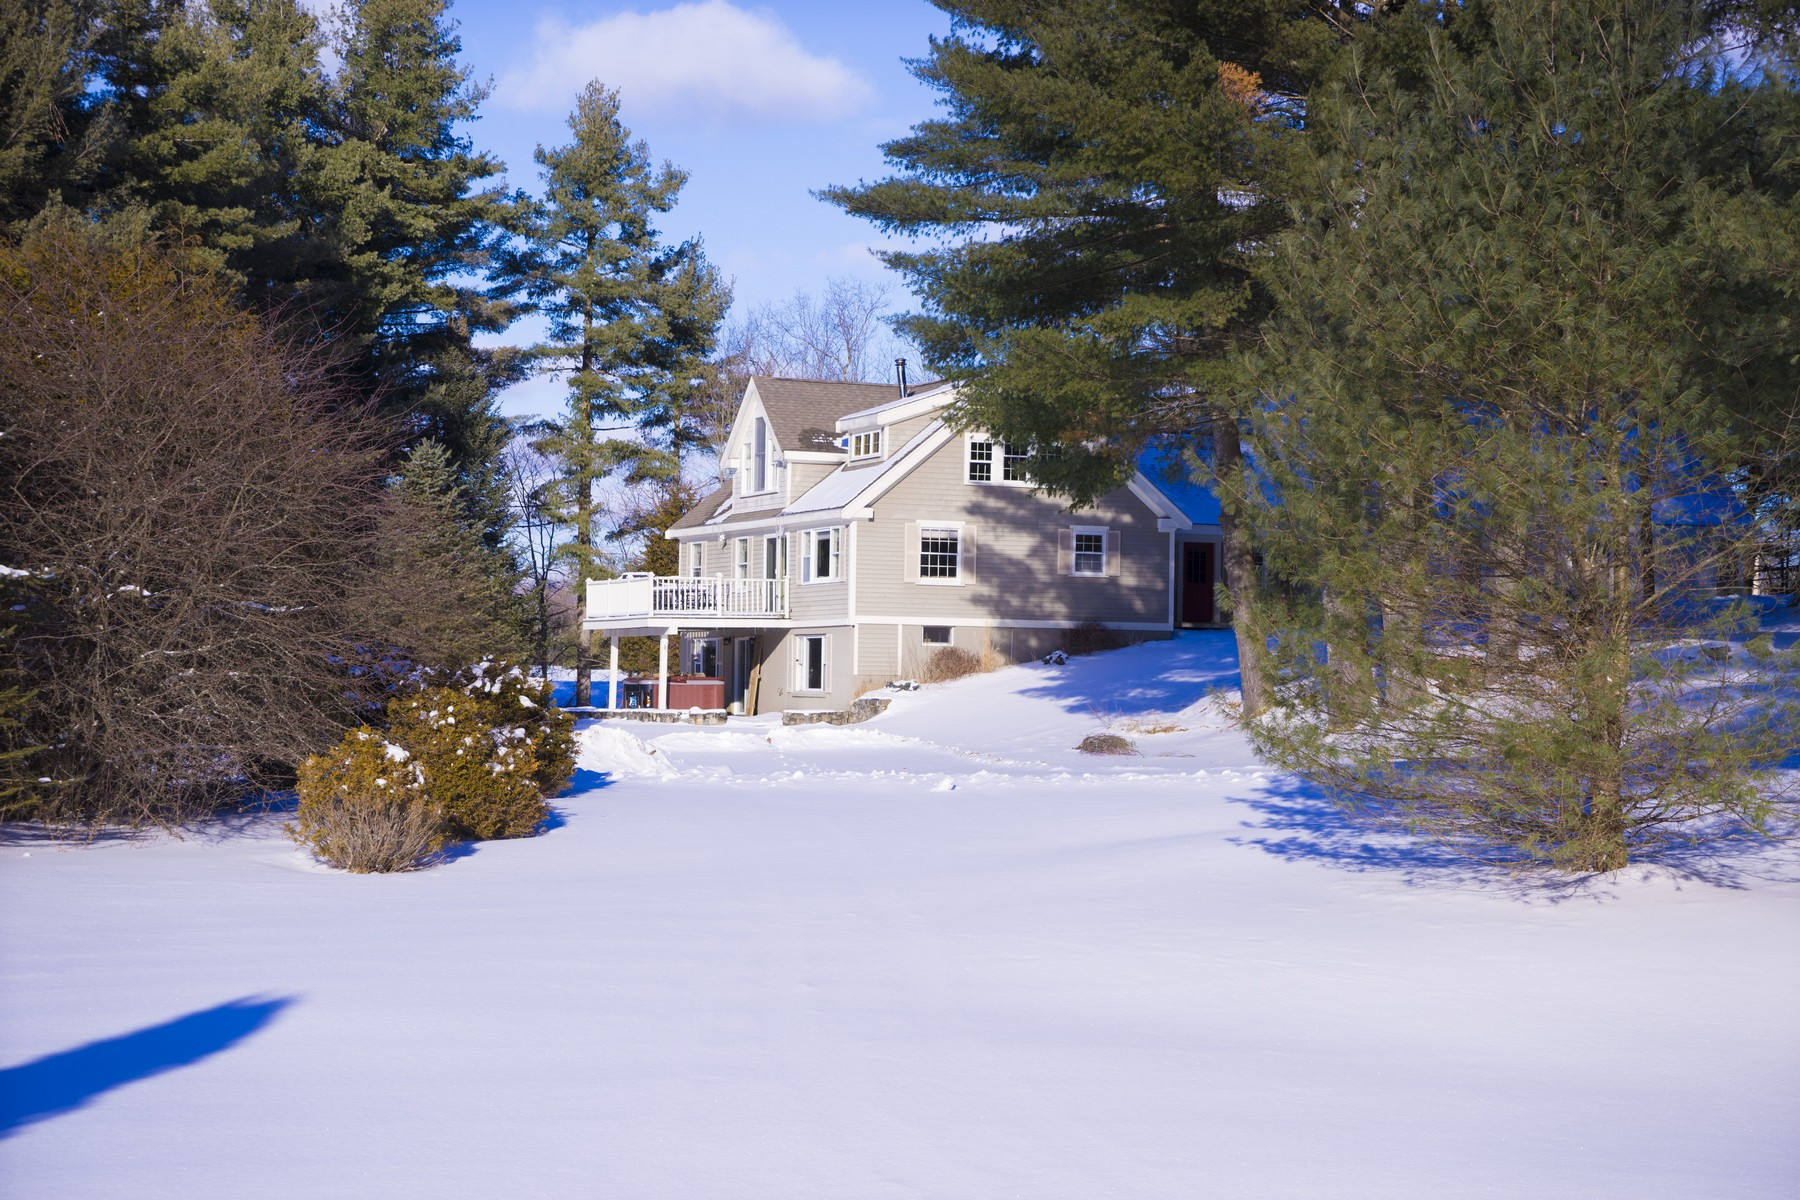 Single Family Home for Sale at 2029 Randolph Road, Morristown 2029 Randolph Rd Morristown, Vermont 05661 United States